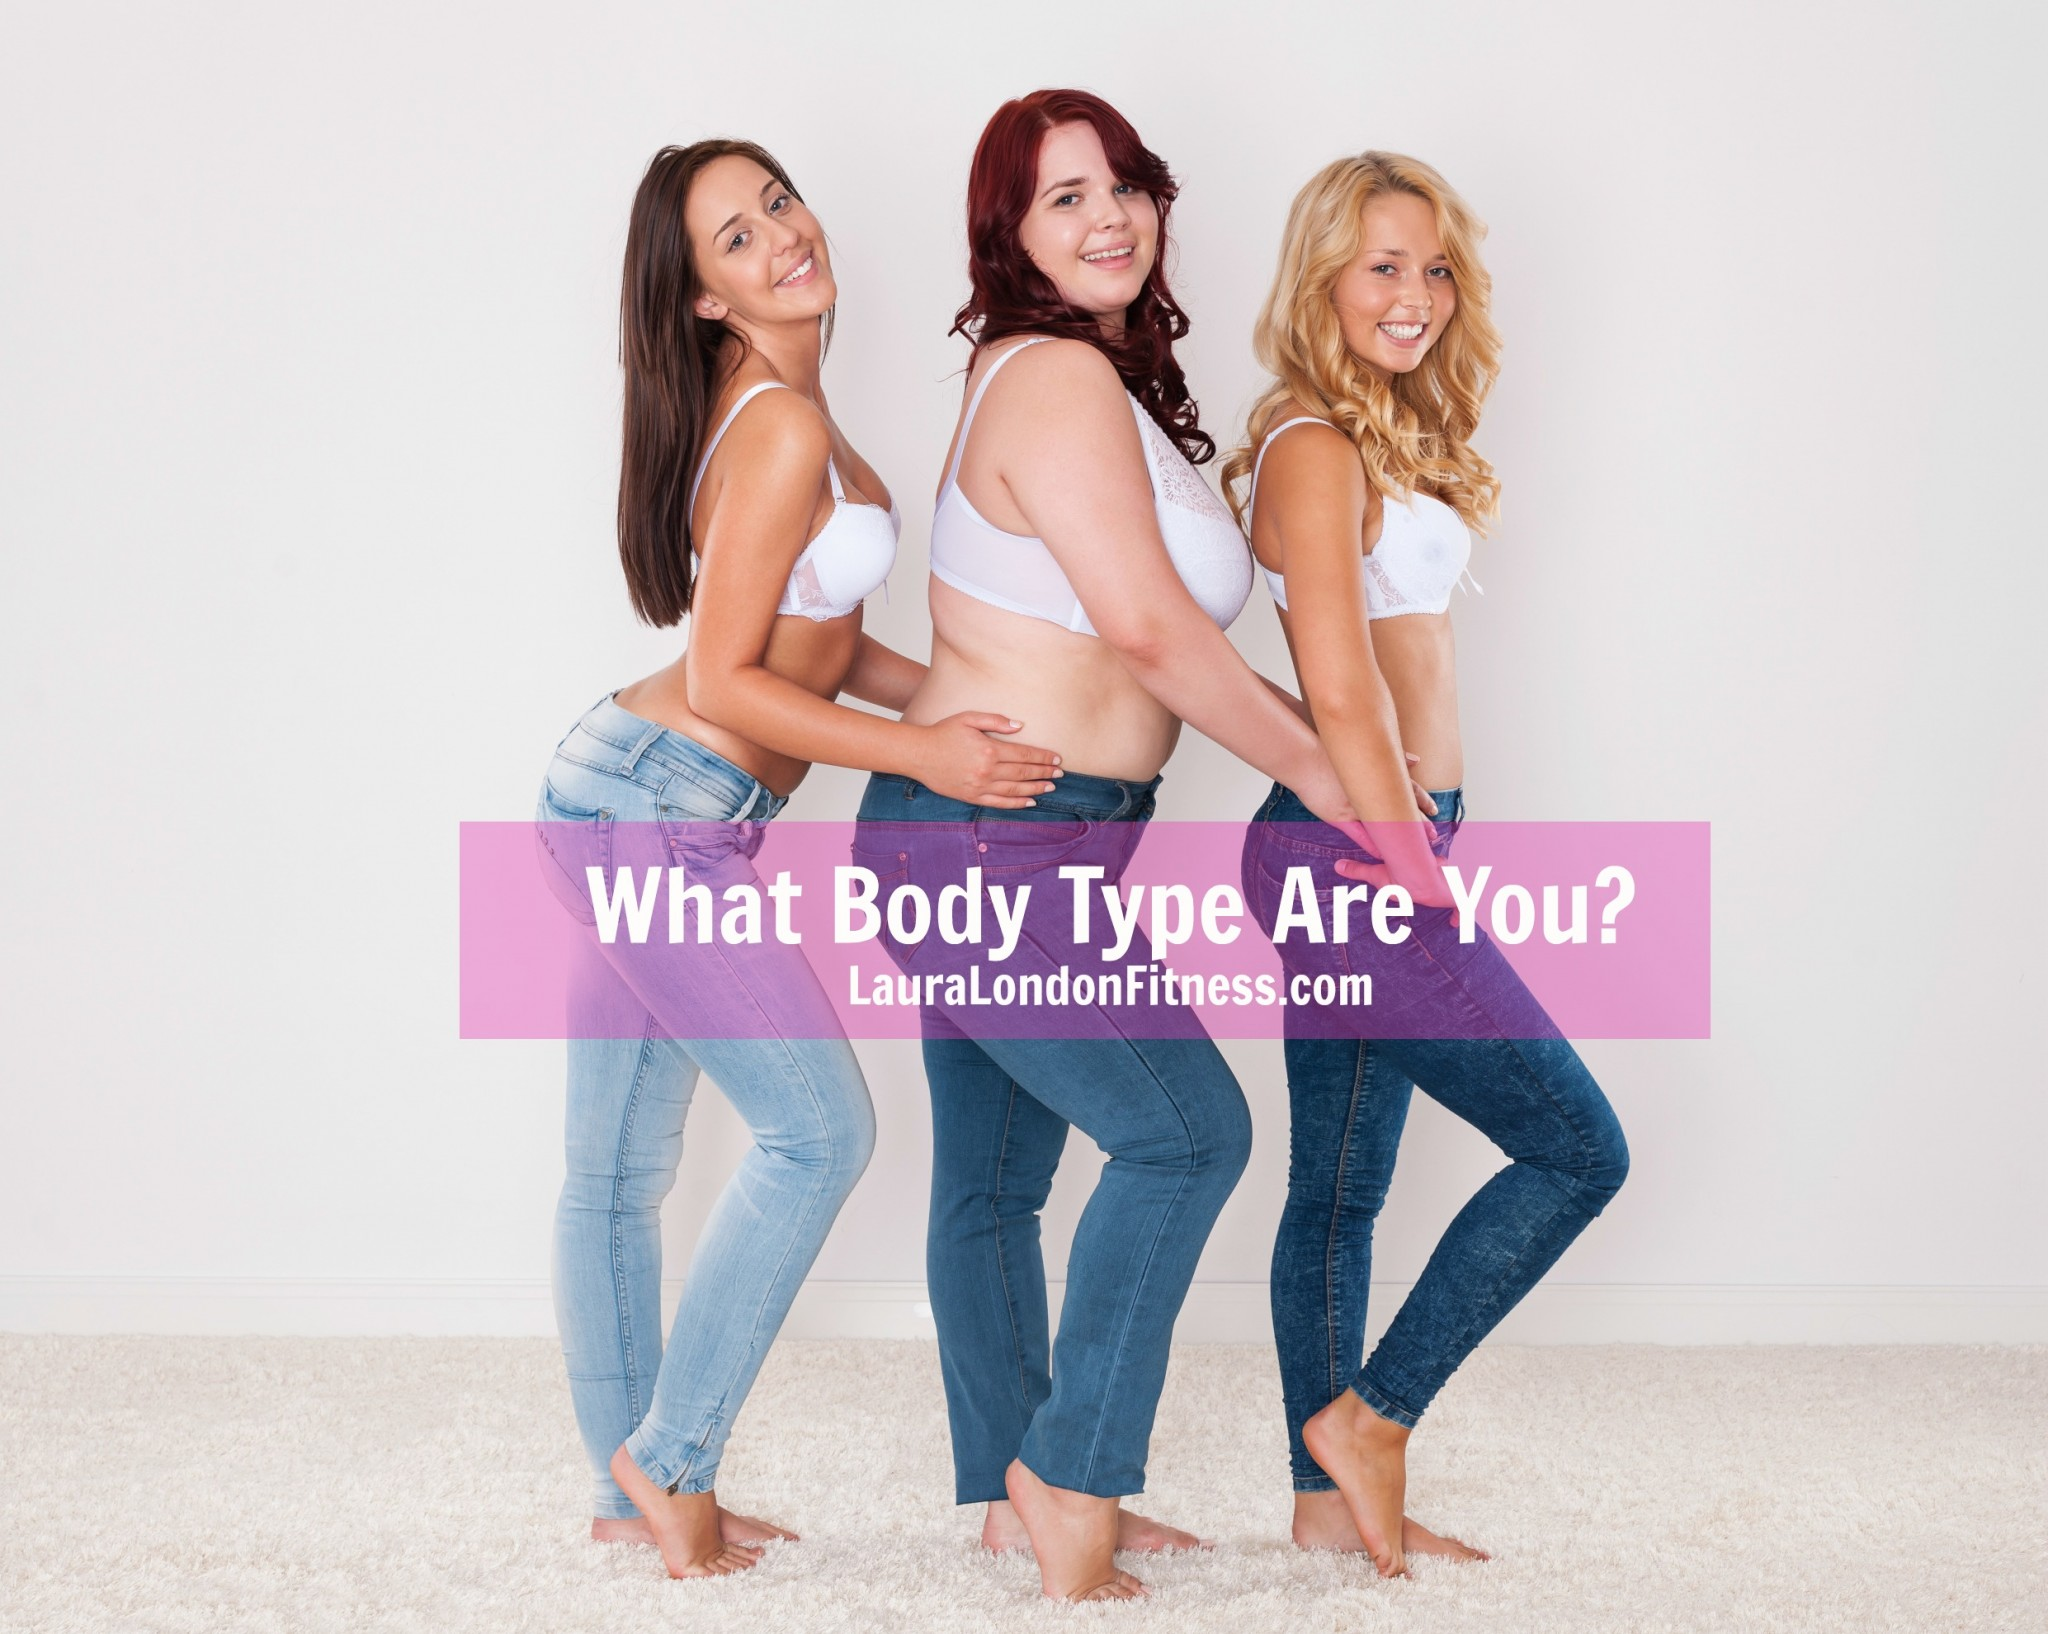 What Body Type Are You Ectomorph Mesomorph Amp Endomorph